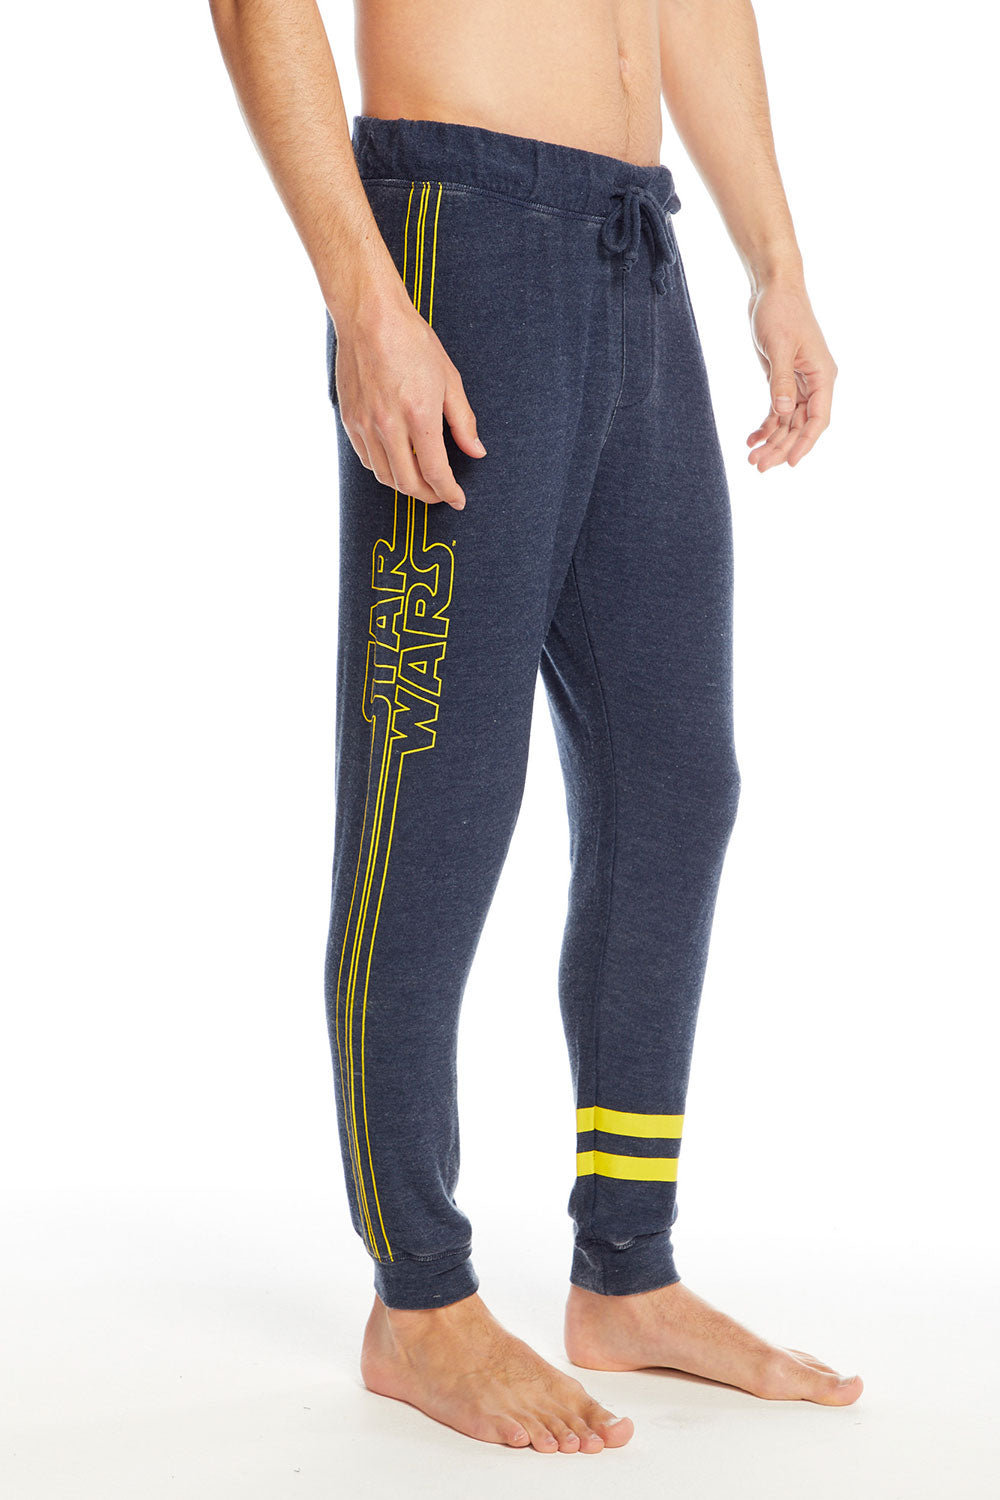 Star Wars - Star Wars Logo Pants, MENS, chaserbrand.com,chaser clothing,chaser apparel,chaser los angeles